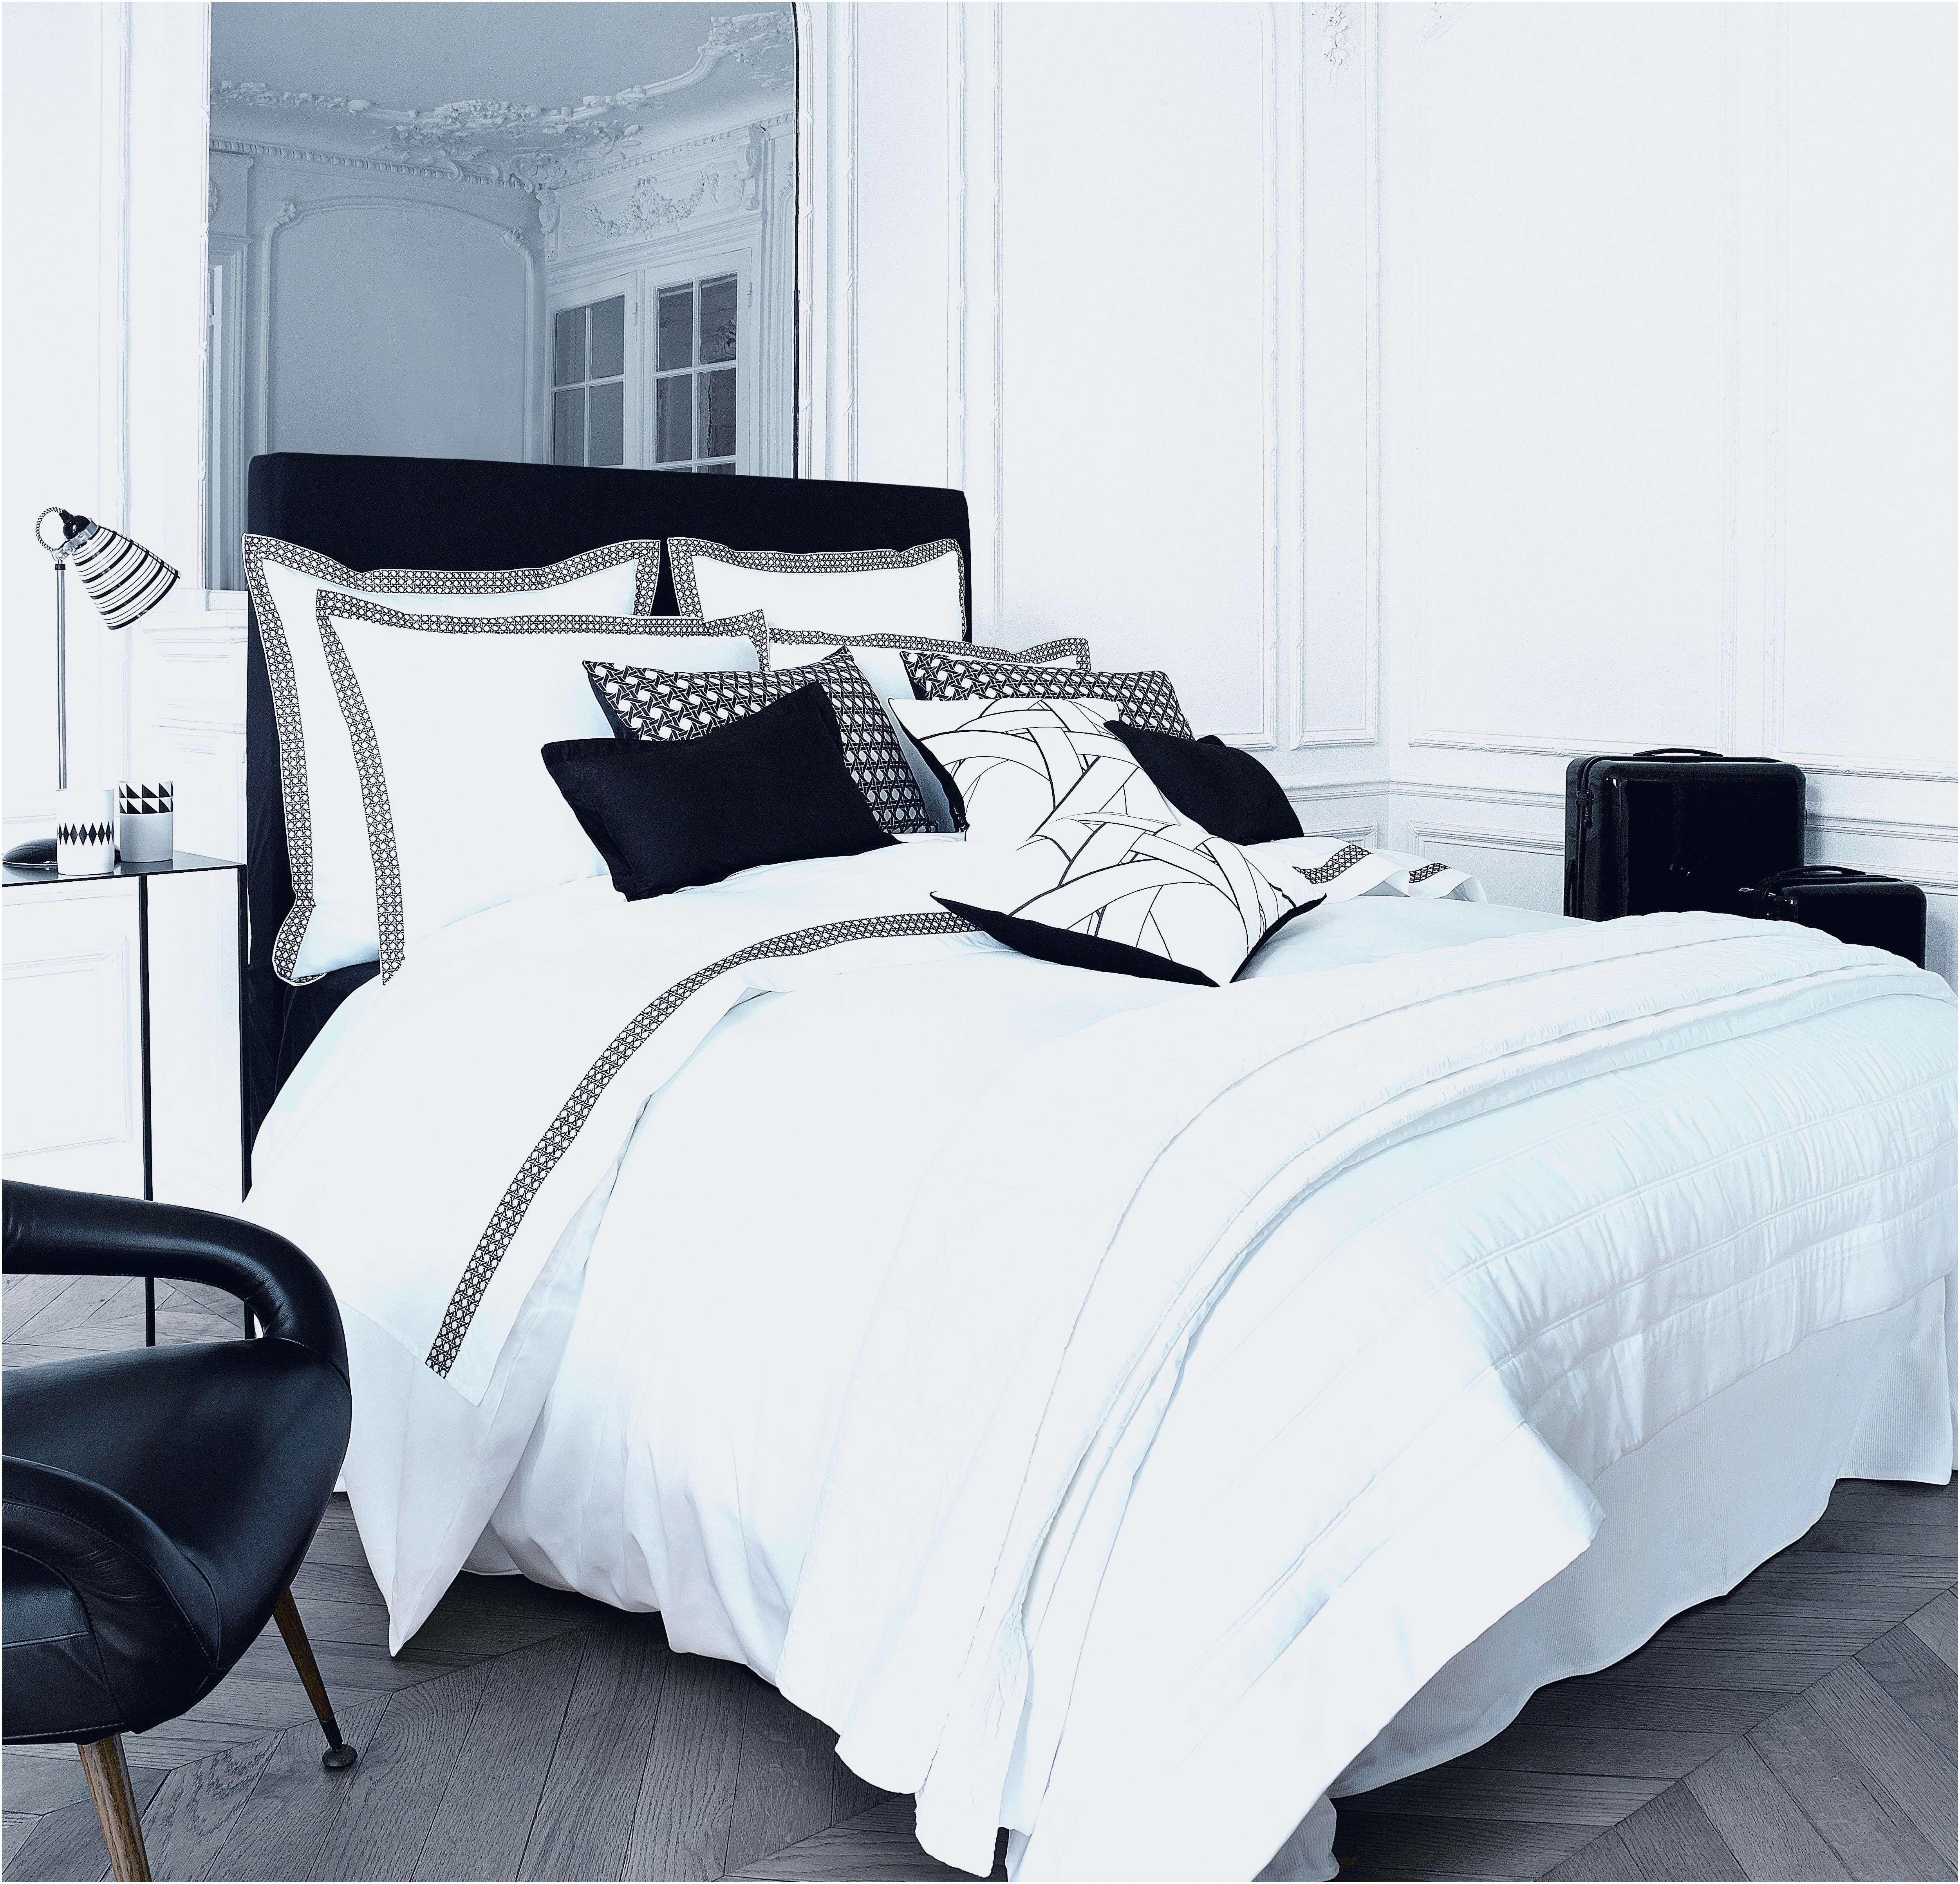 Second Hand Bed Sheets For Sale Luxurybedlinenitalian Info 7610914298 Wheretobuybedlinen Bed Linens Luxury Bed Home